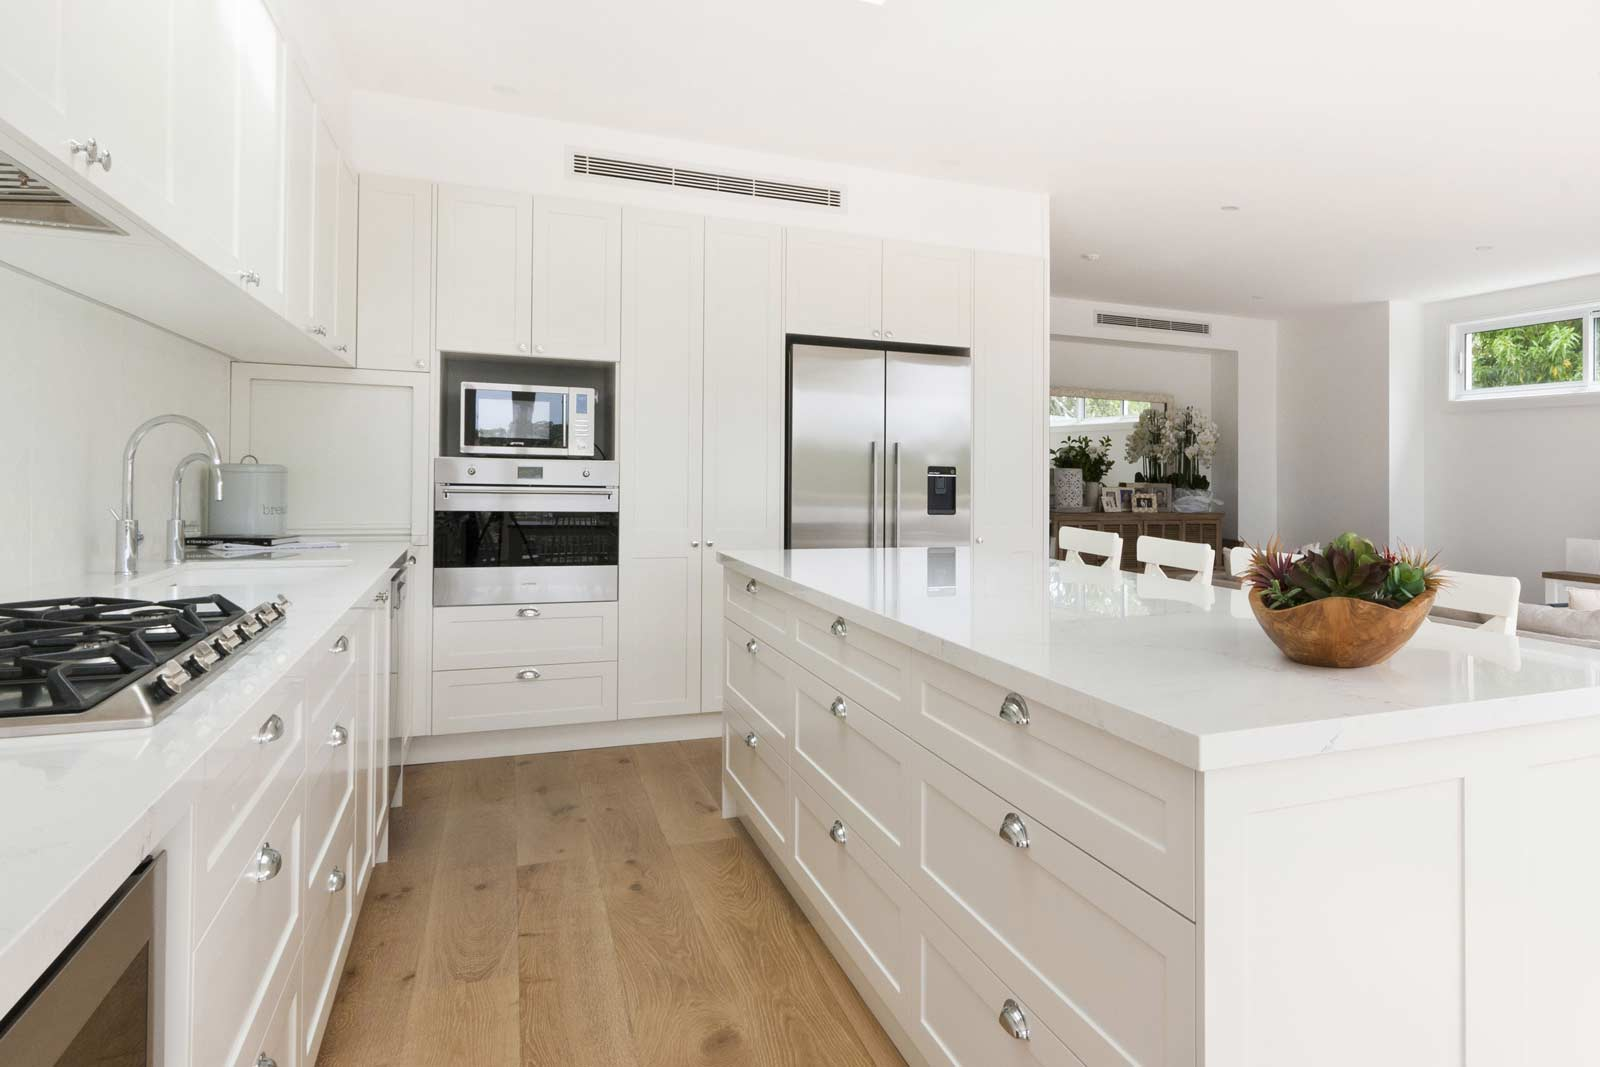 ... Premier Kitchensu0027 Contemporary Hamptonu0027s Style ...